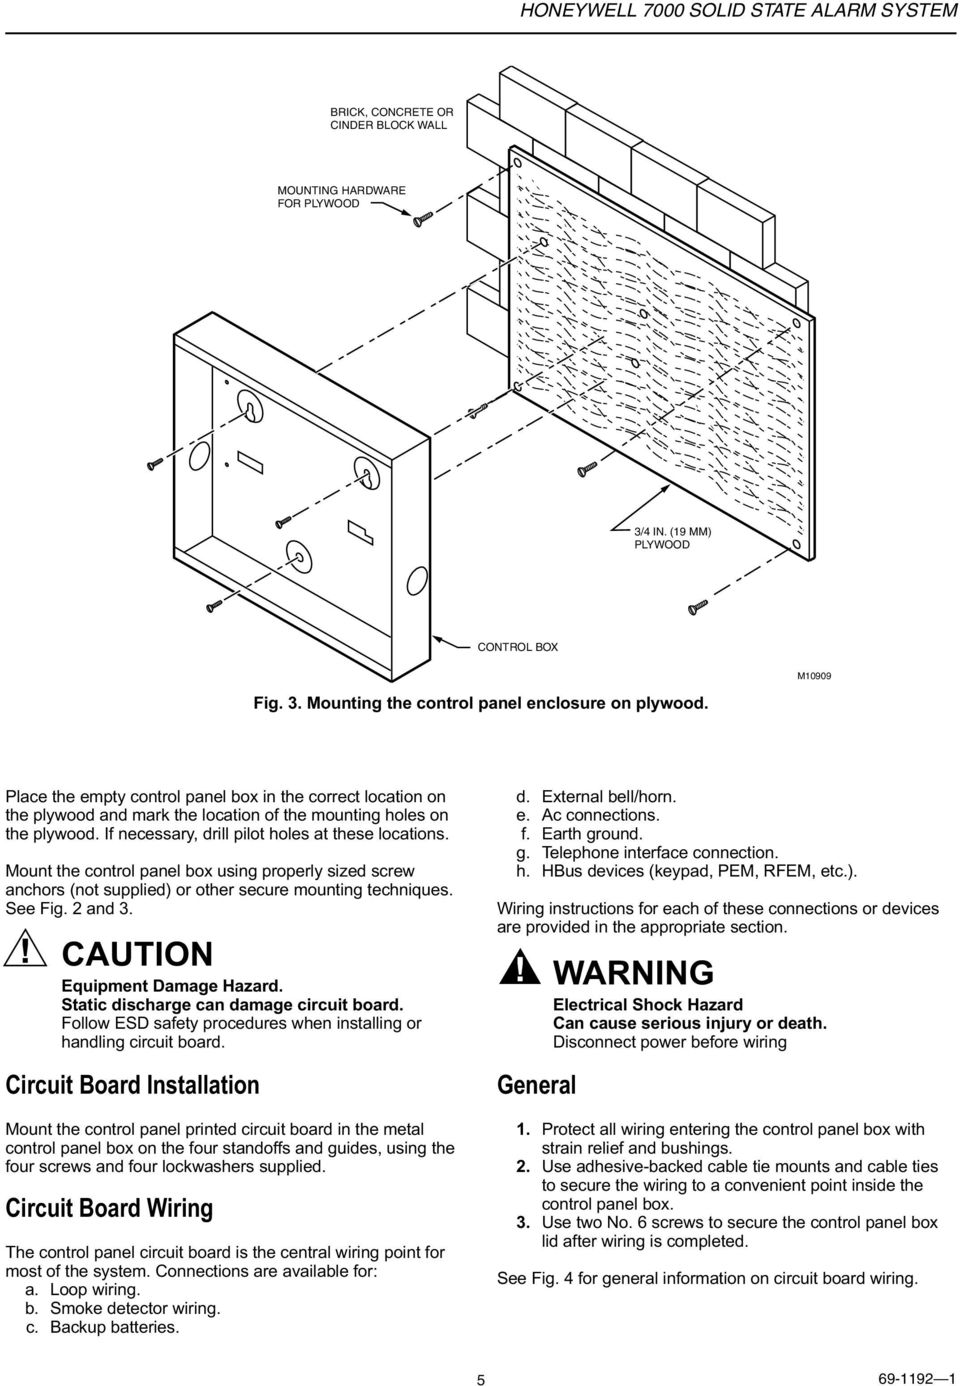 Honeywell 7000 Solid State Alarm System Pdf Wiring Block Wall Mount The Control Panel Box Using Properly Sized Screw Anchors Not Supplied Or Other